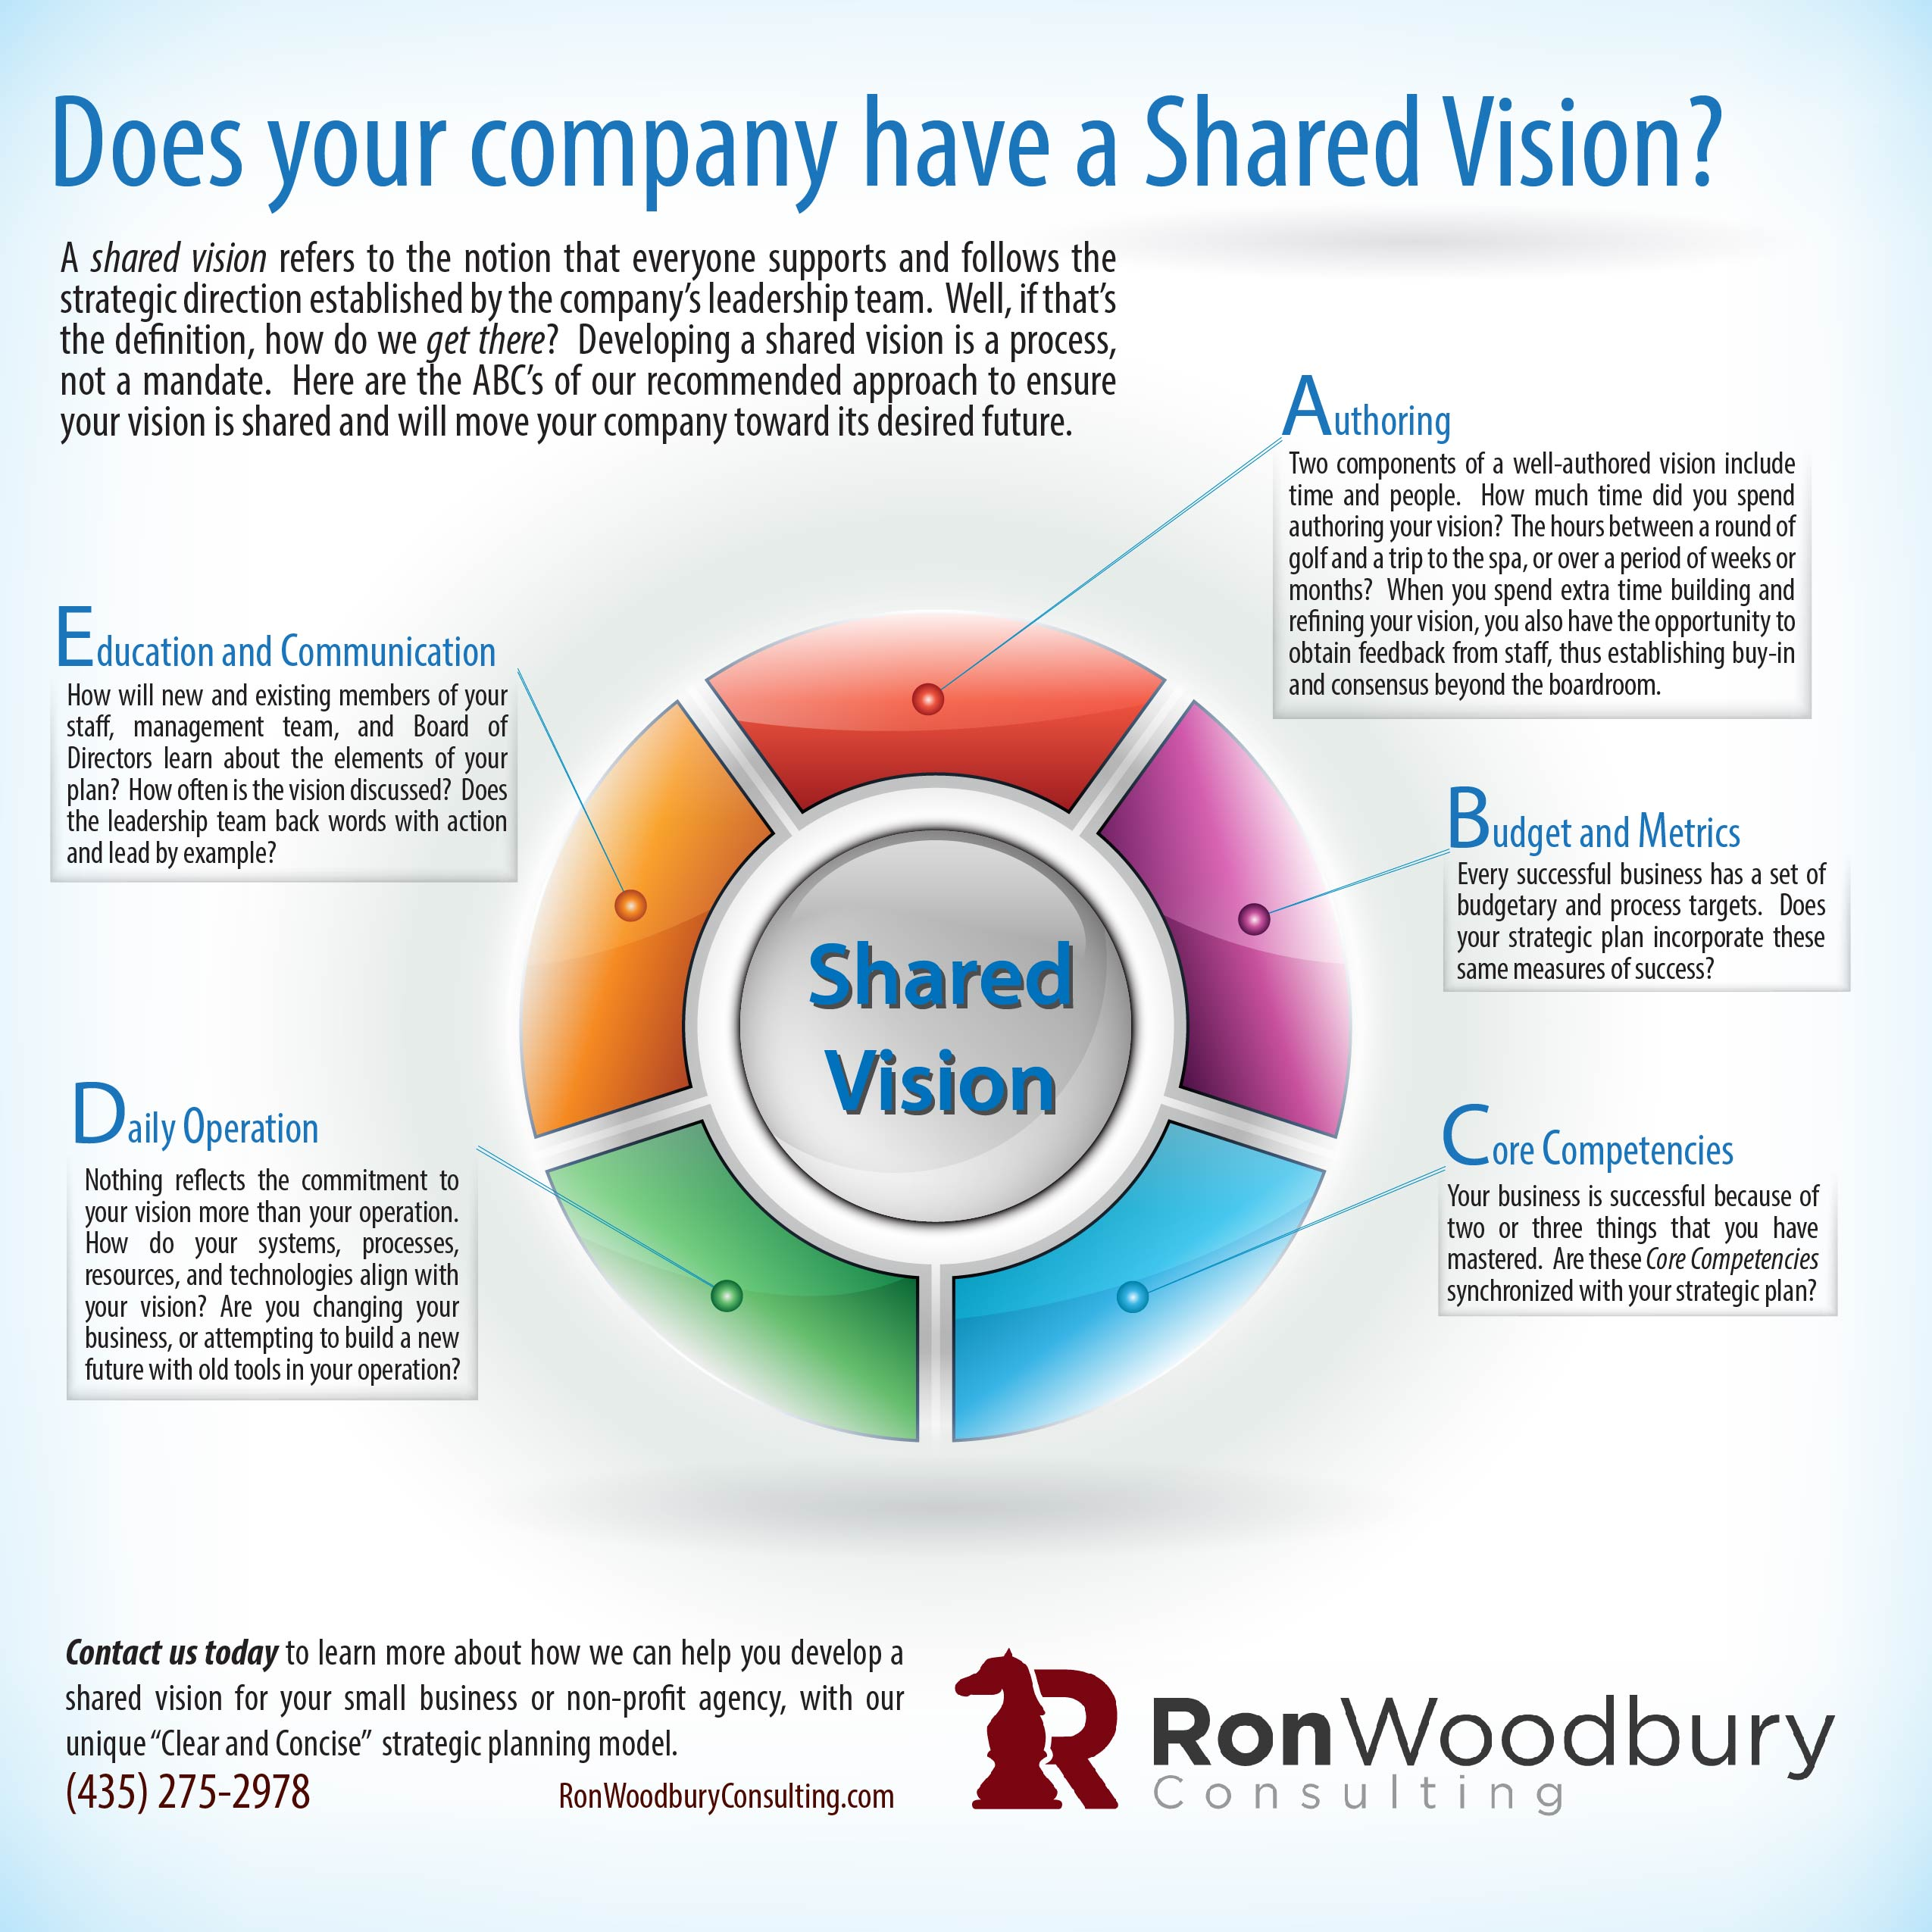 Ron Woodbury Consulting Shared Image Infogrfaphic